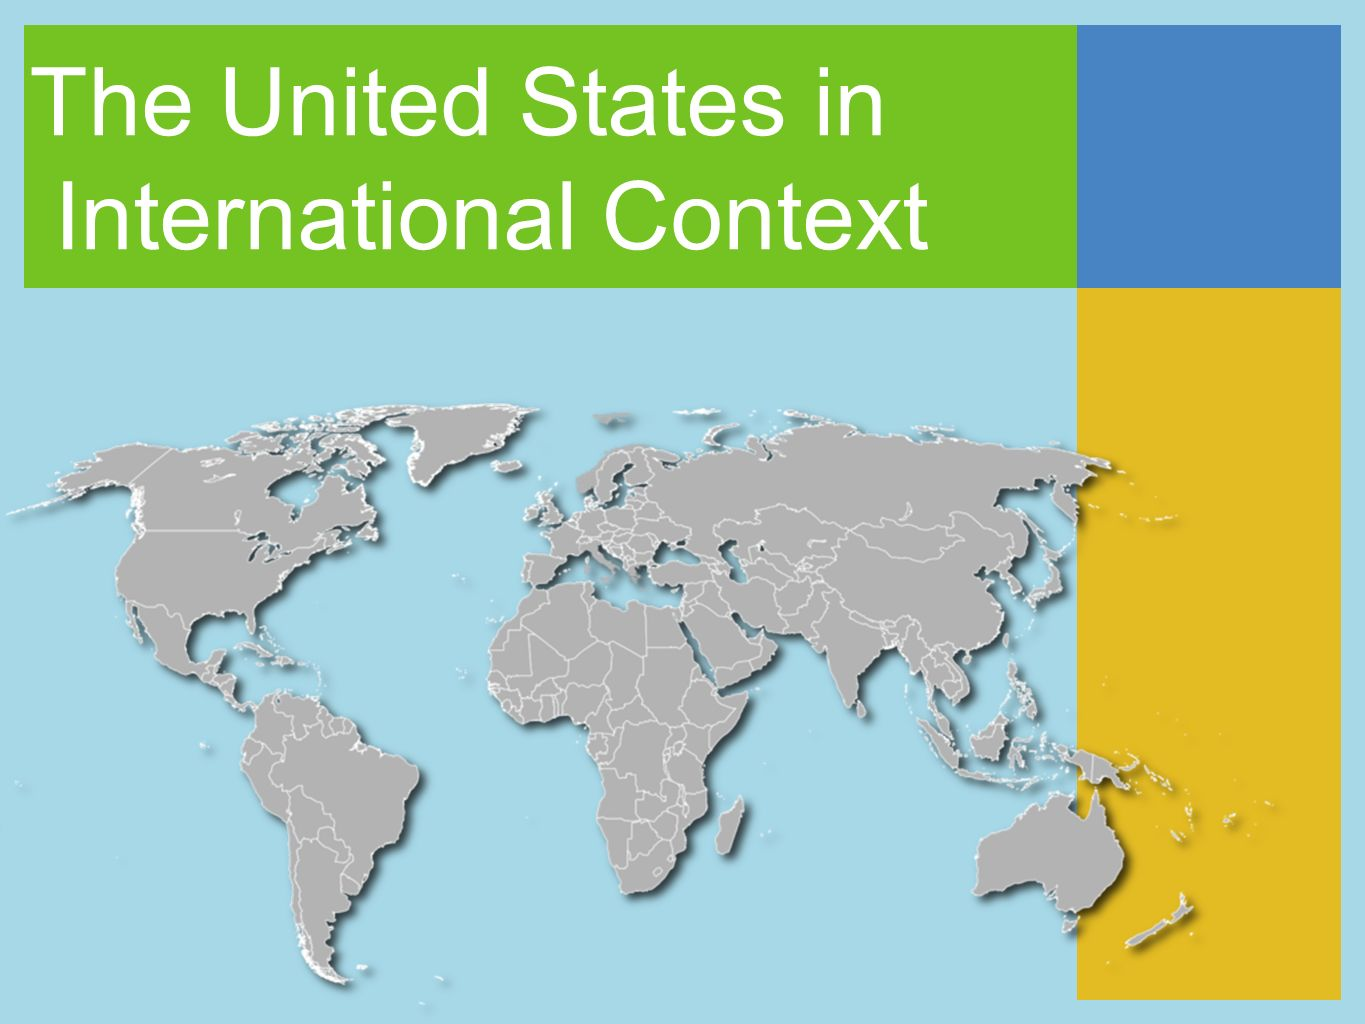 The United States in International Context